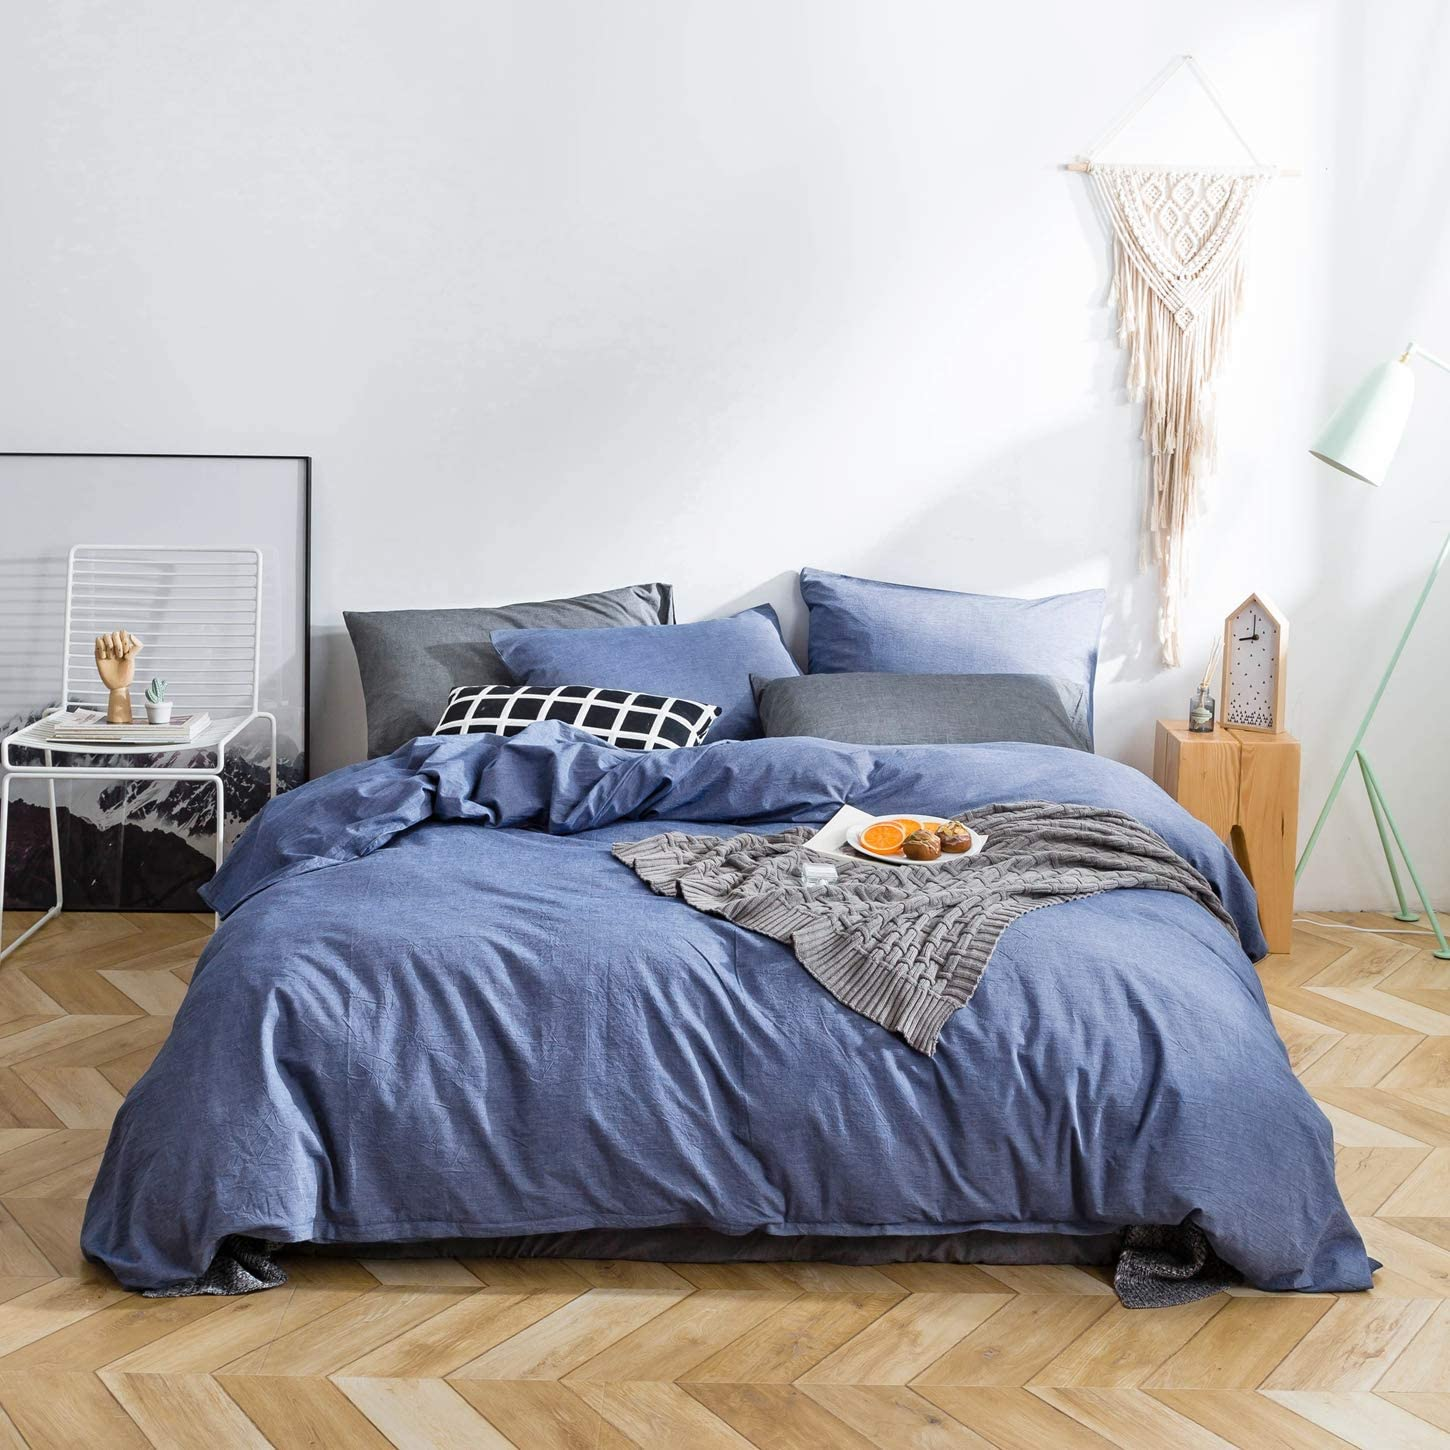 SUSYBAO 3 Pieces Duvet Cover Set 100% Natural Washed Cotton Denim Blue Queen Size 1 Duvet Cover 2 Pillowcases Luxury Quality Durable Ultra Soft Comfortable Fade Resistant Bedding Set with Zipper Ties